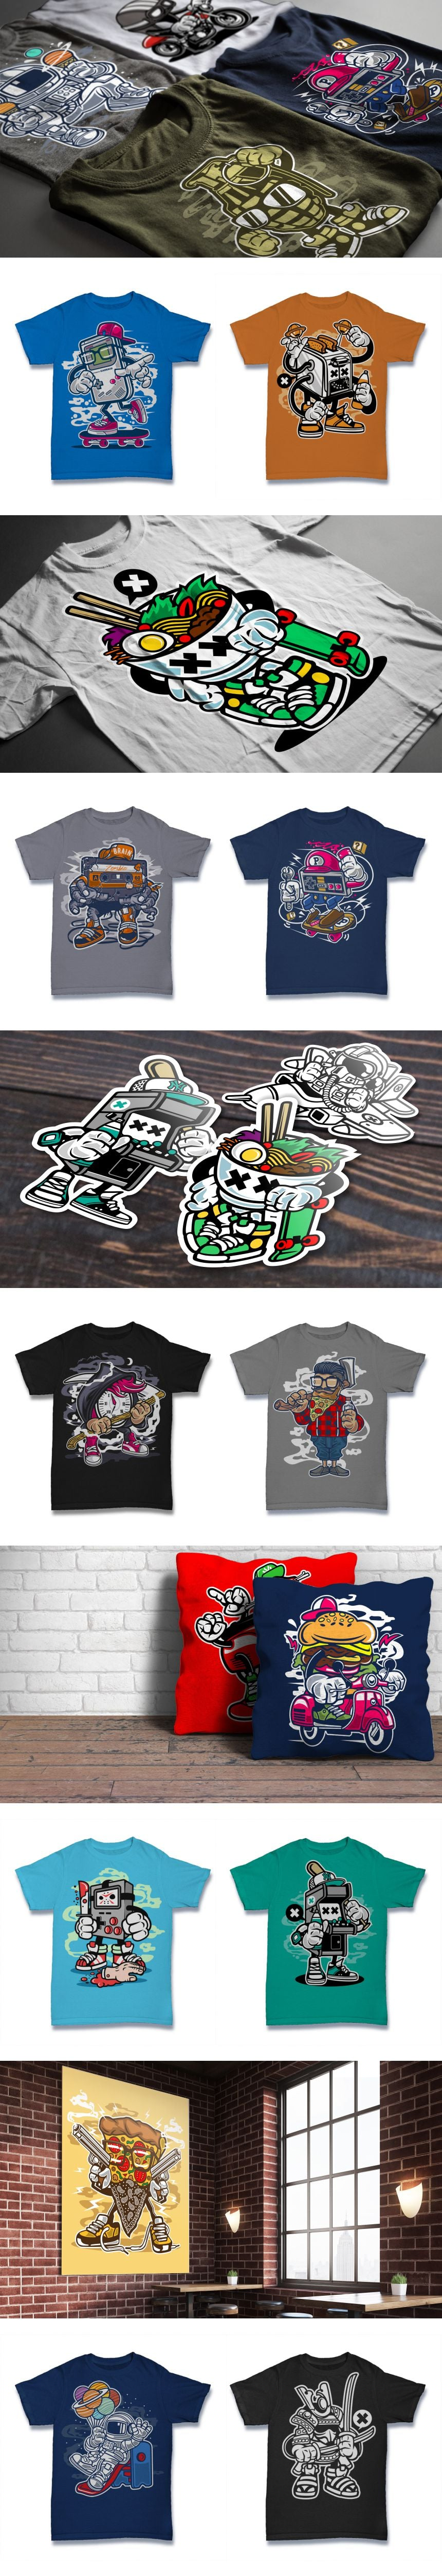 101 T-shirt Designs with cartoon concept. Collage for pinterest.